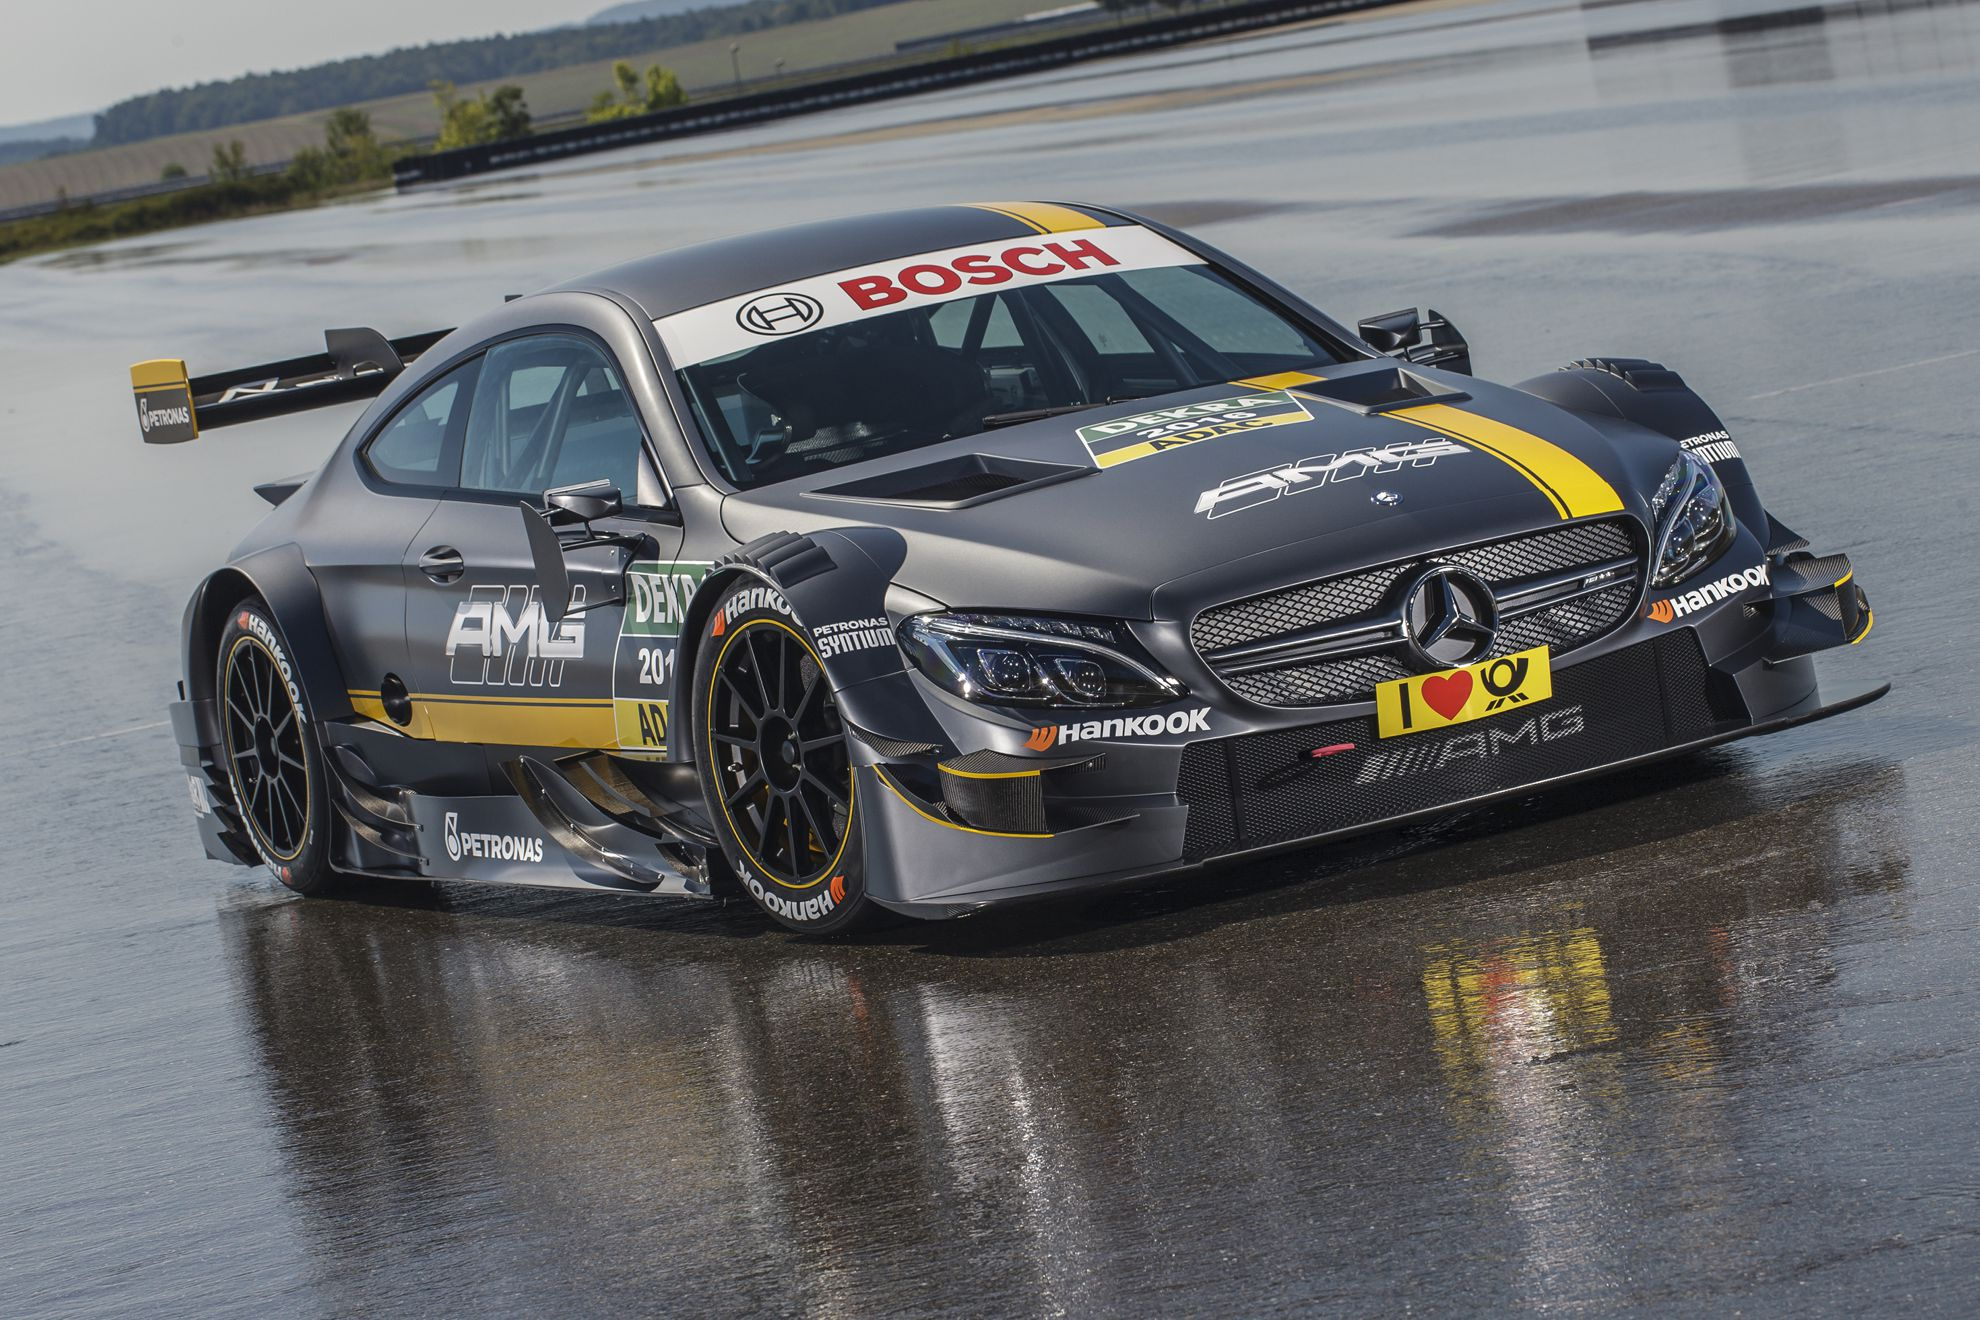 Mercedes-Benz-DTM-Race-Car